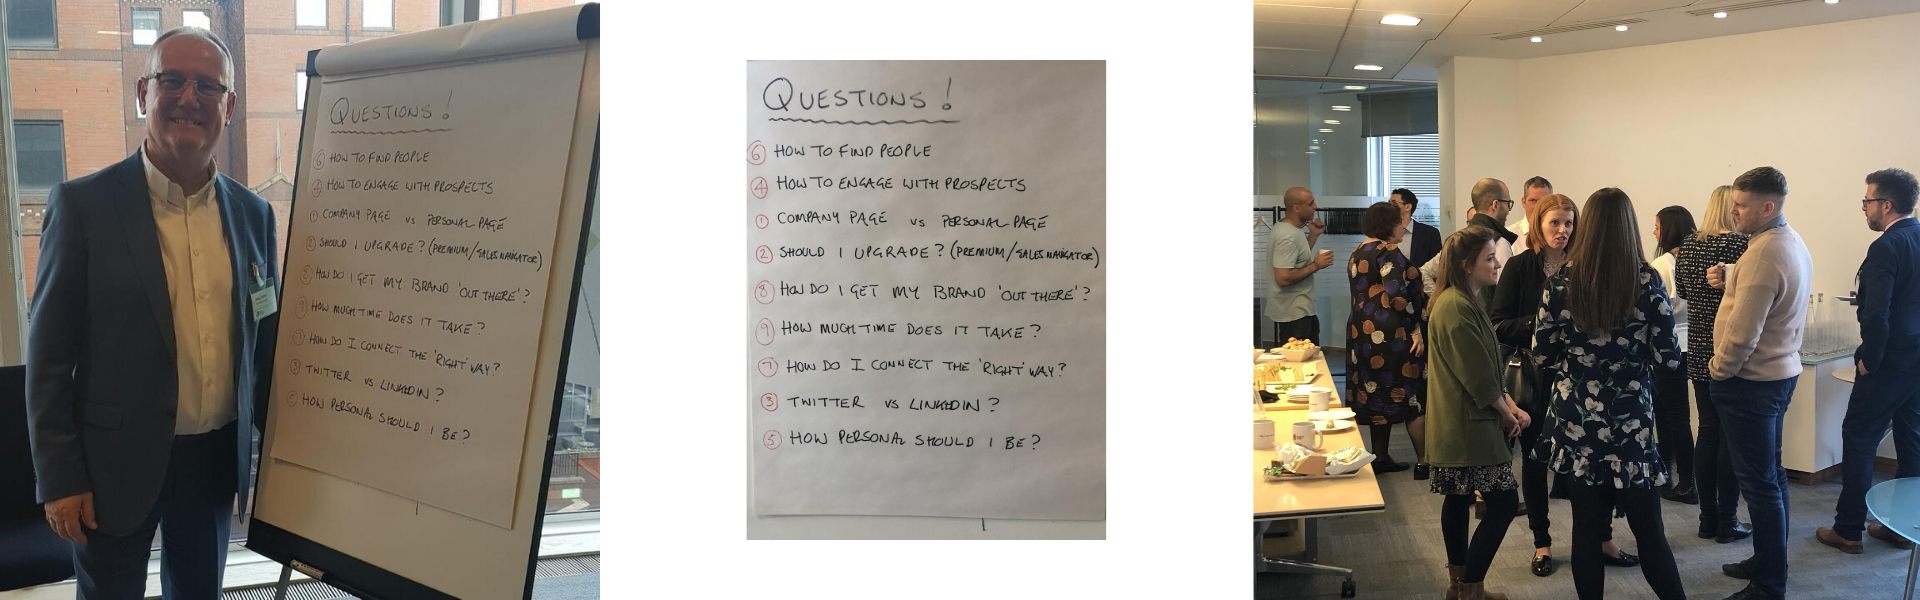 LinkedIn Questions from LinkedIn Learning Lunch with Nigel Cliffe